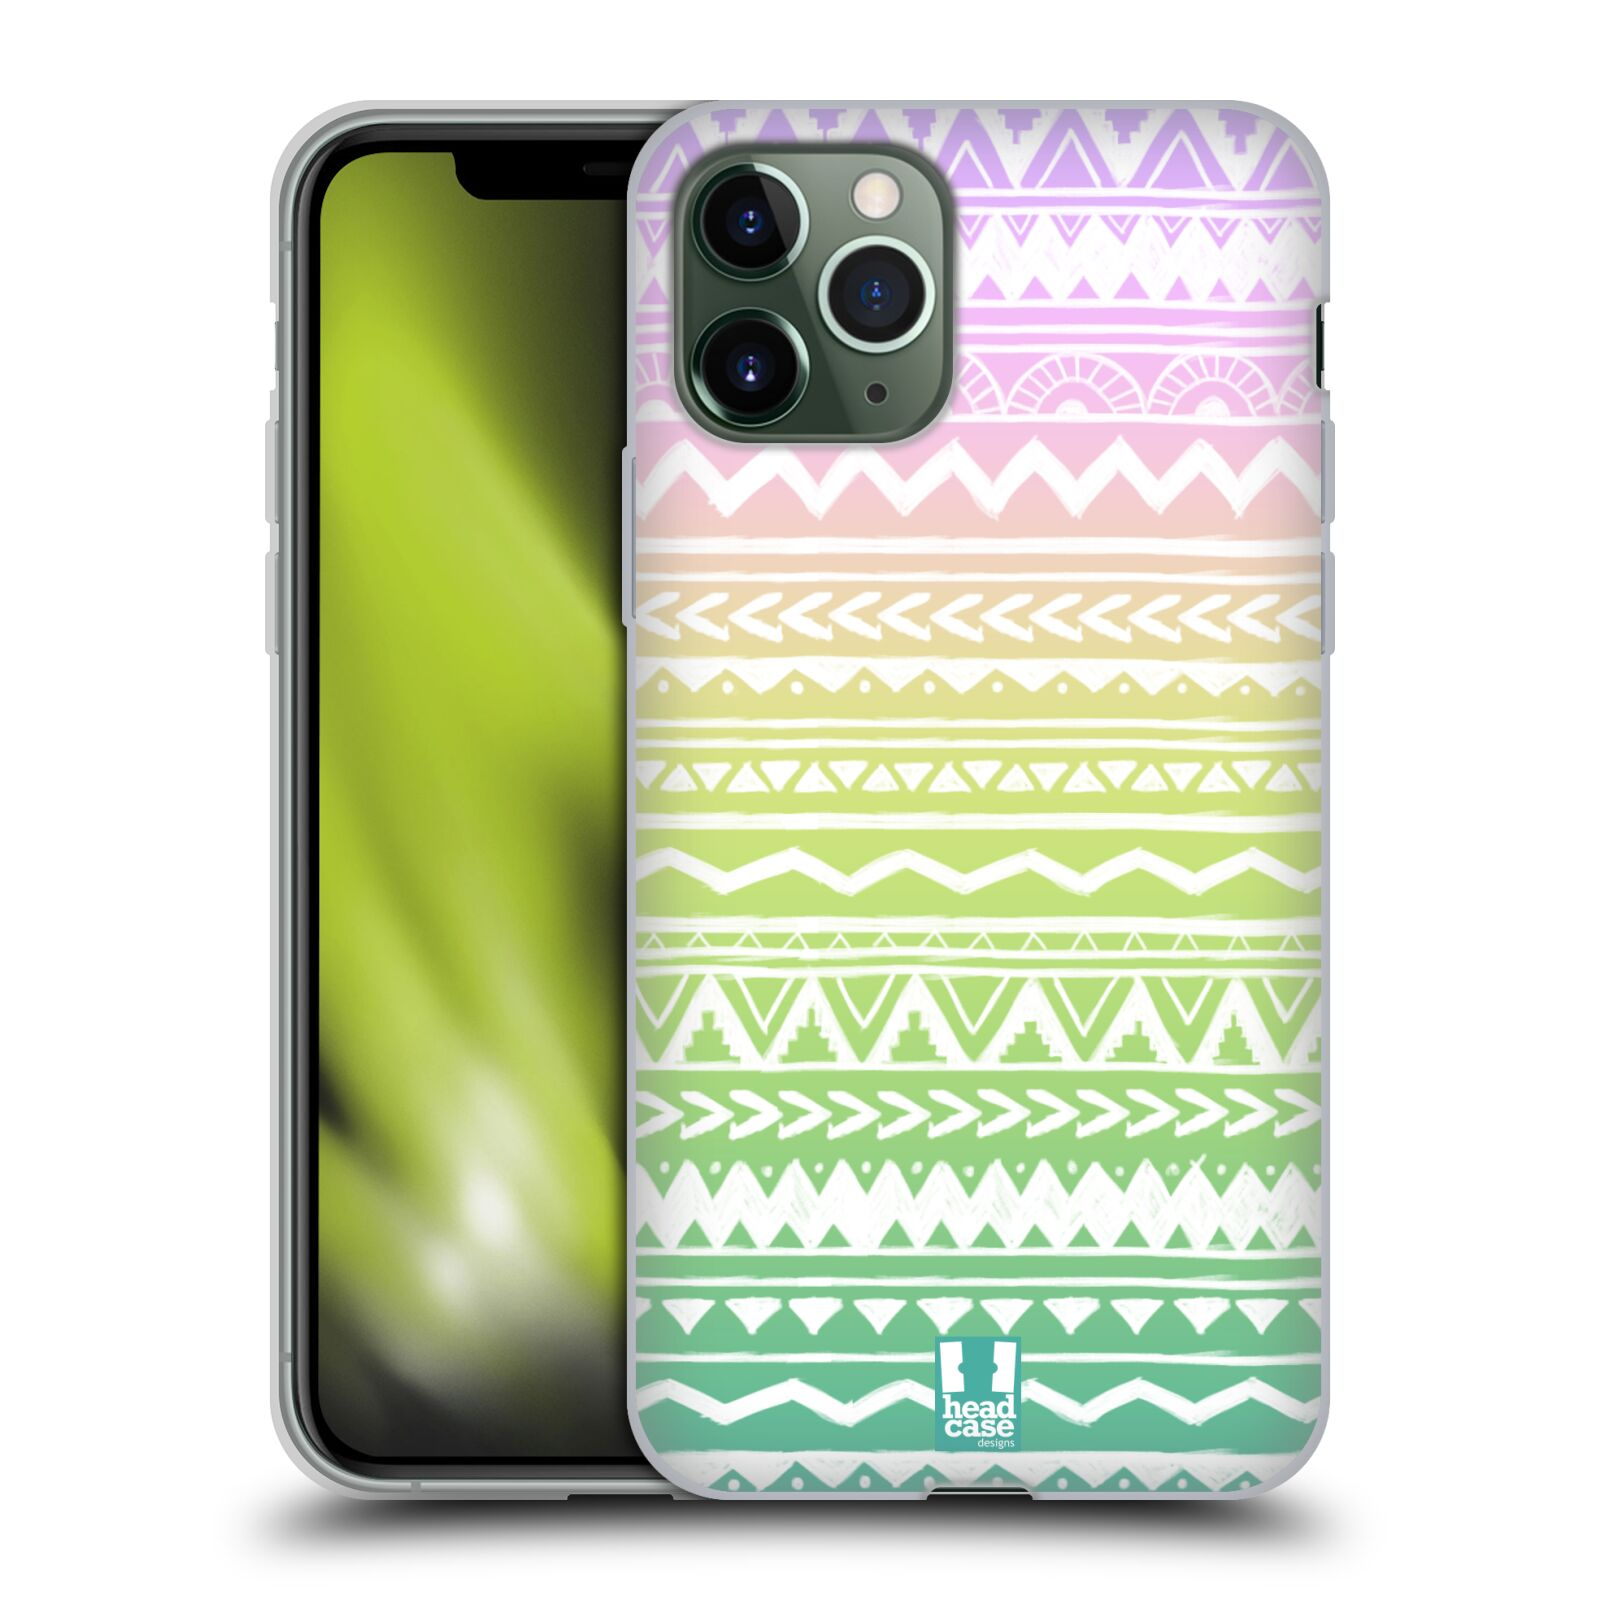 rozmery iphone se - Silikonové pouzdro na mobil Apple iPhone 11 Pro - Head Case - MIX AZTEC DRAWN